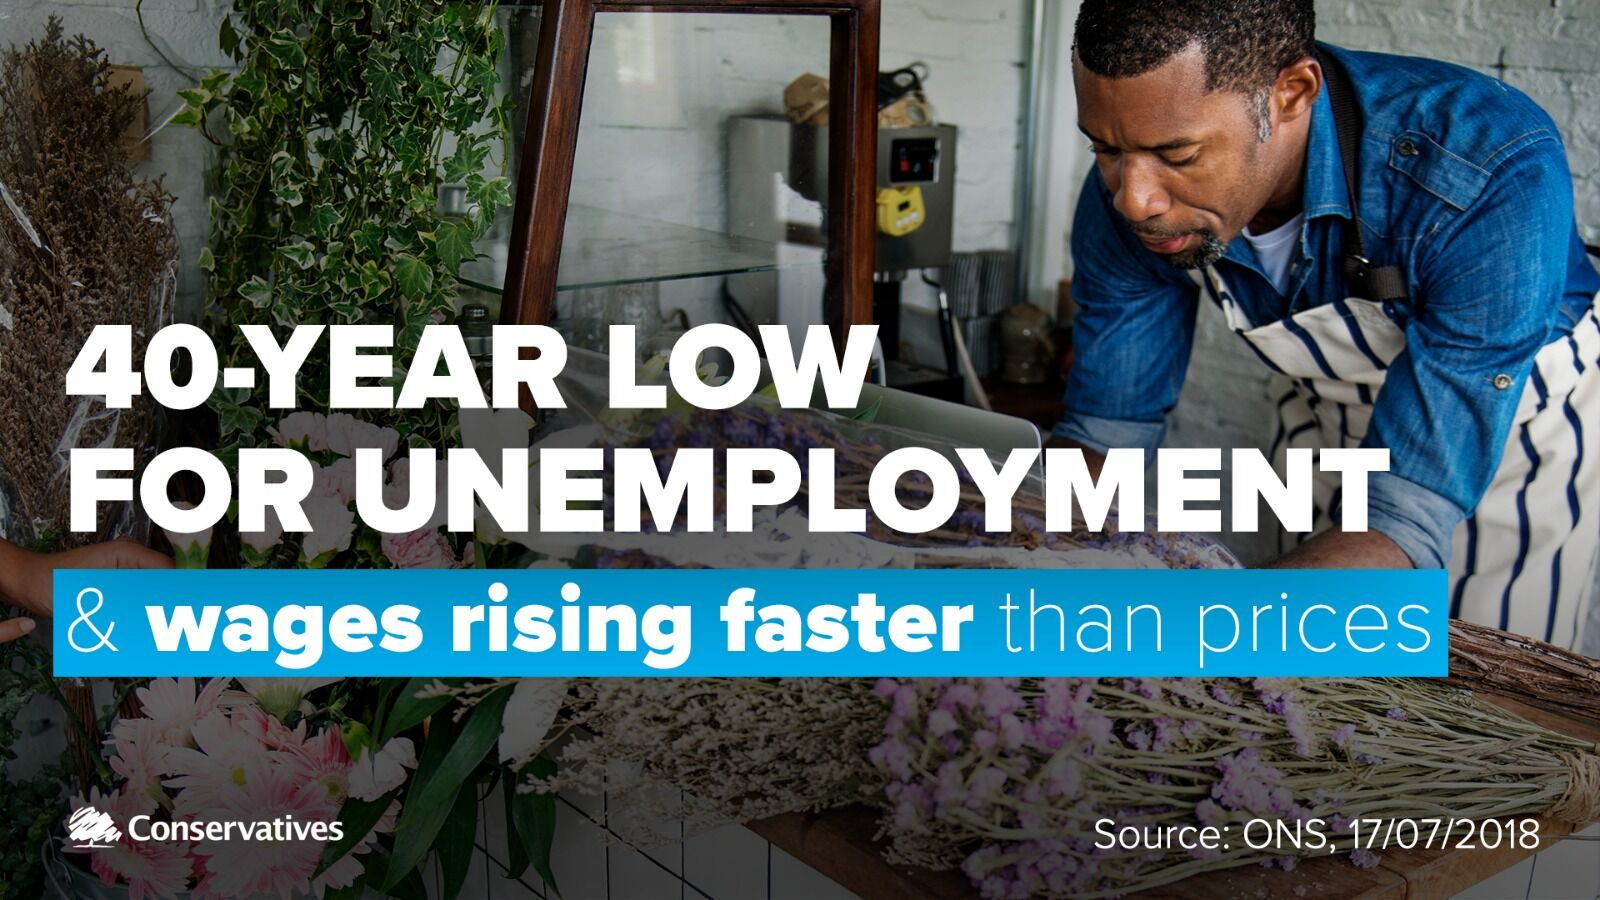 40 year low for unemployment & wages rising faster than prices - Conservatives